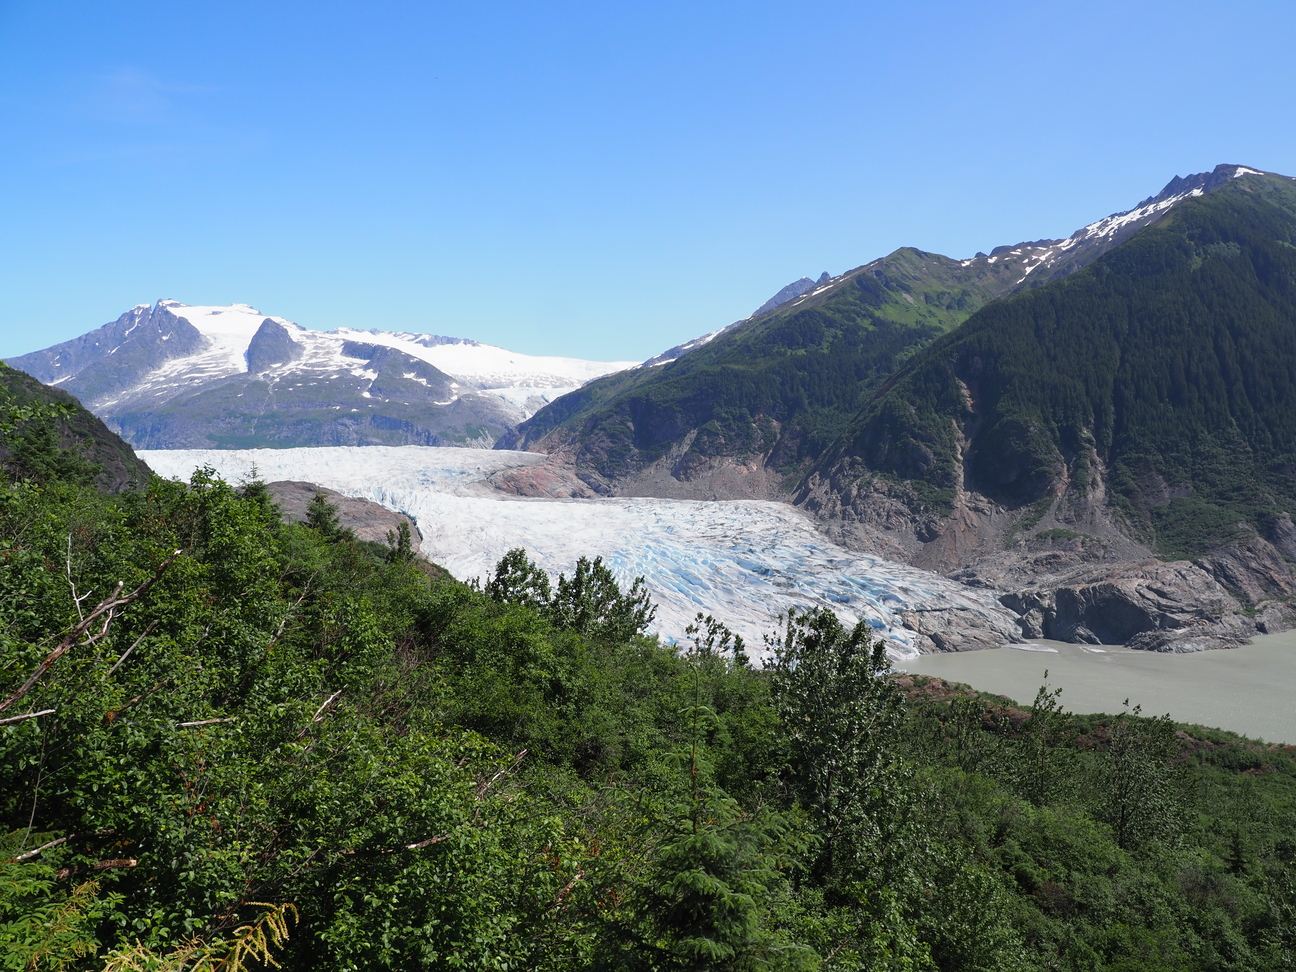 Travel to Alaska: Now is the time to plan great adventures in the Great Land